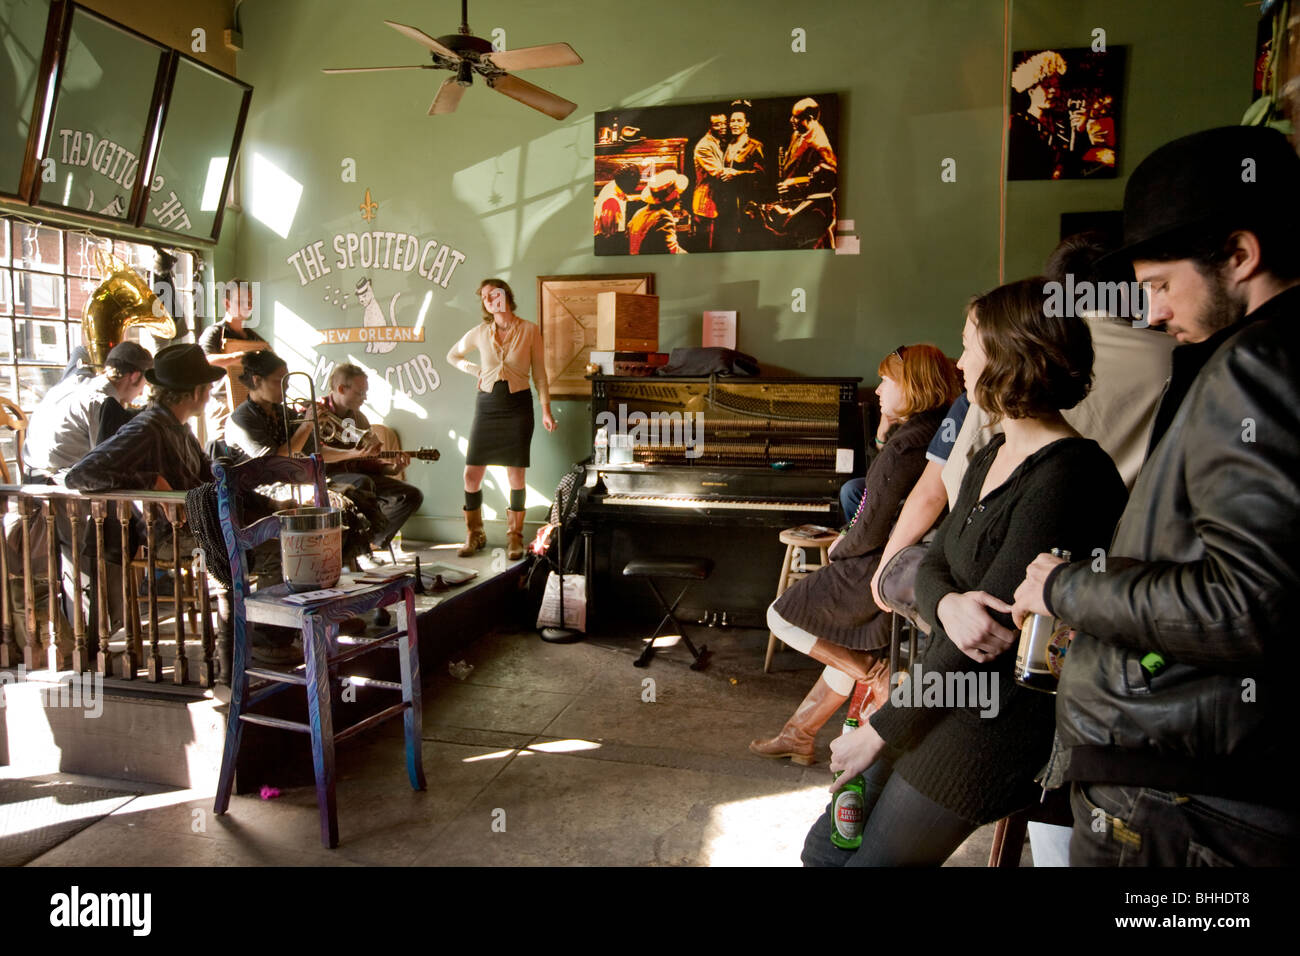 Jazz combo playing for tips in a Frenchman Street tavern, Fauborg Marigny, New Orleans, Louisiana - Stock Image